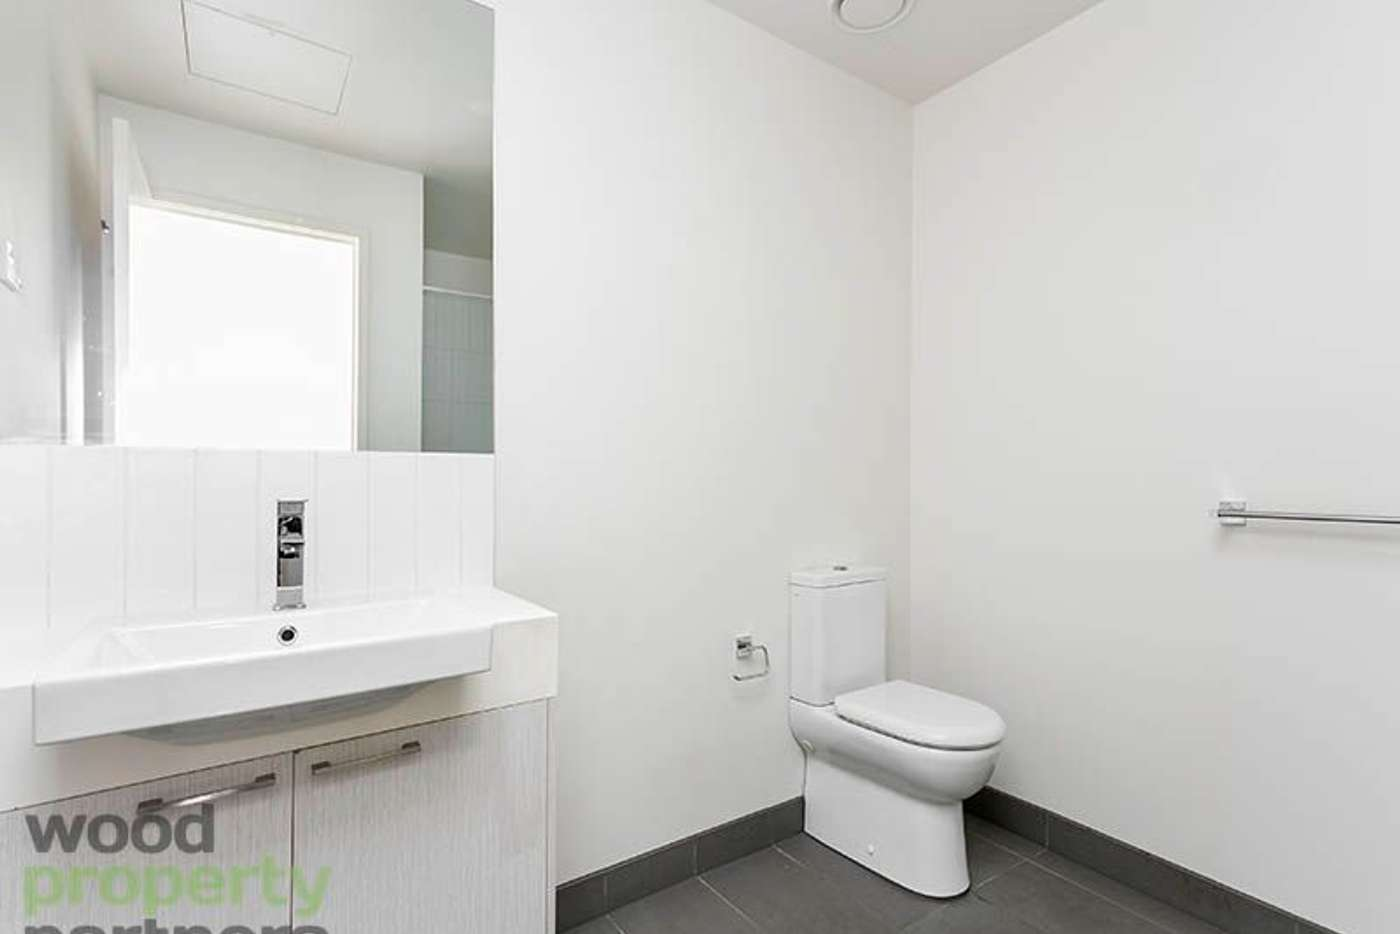 Sixth view of Homely apartment listing, 518/187 Boundary Road, North Melbourne VIC 3051